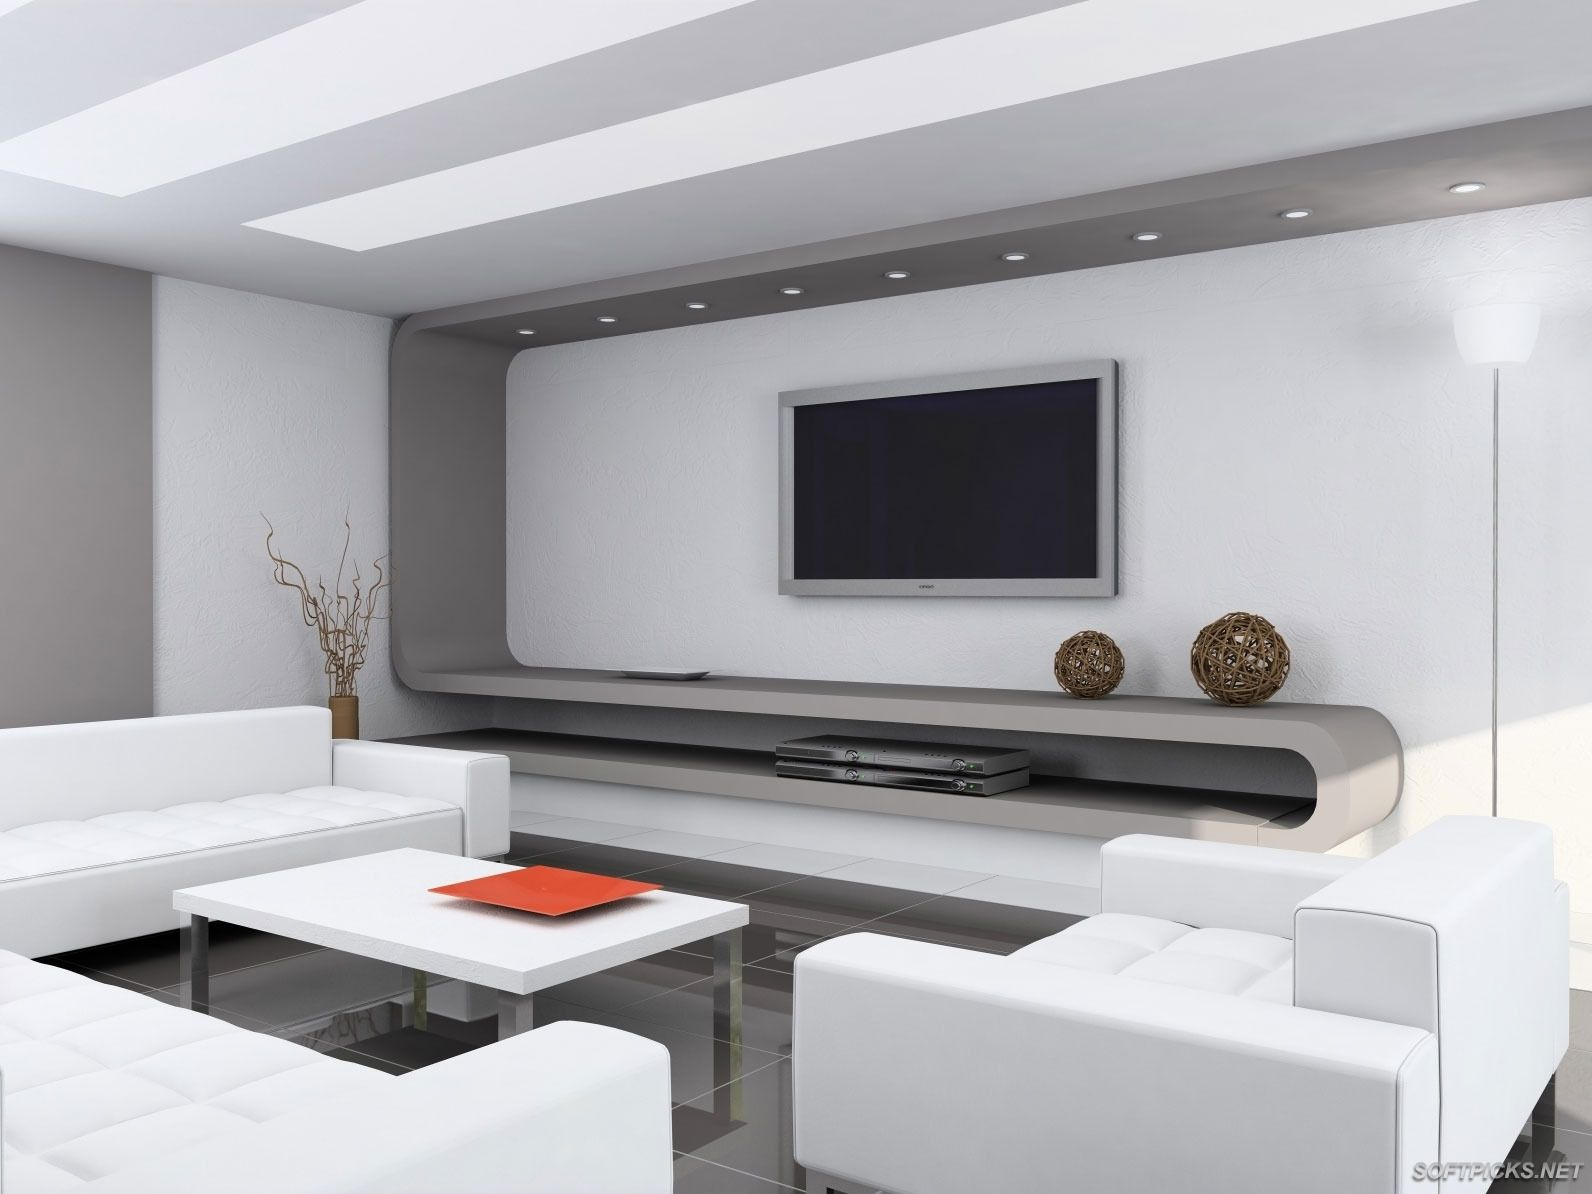 Interiorgrey tv stands shelves with white living room sofa sets and cool ceiling lamps